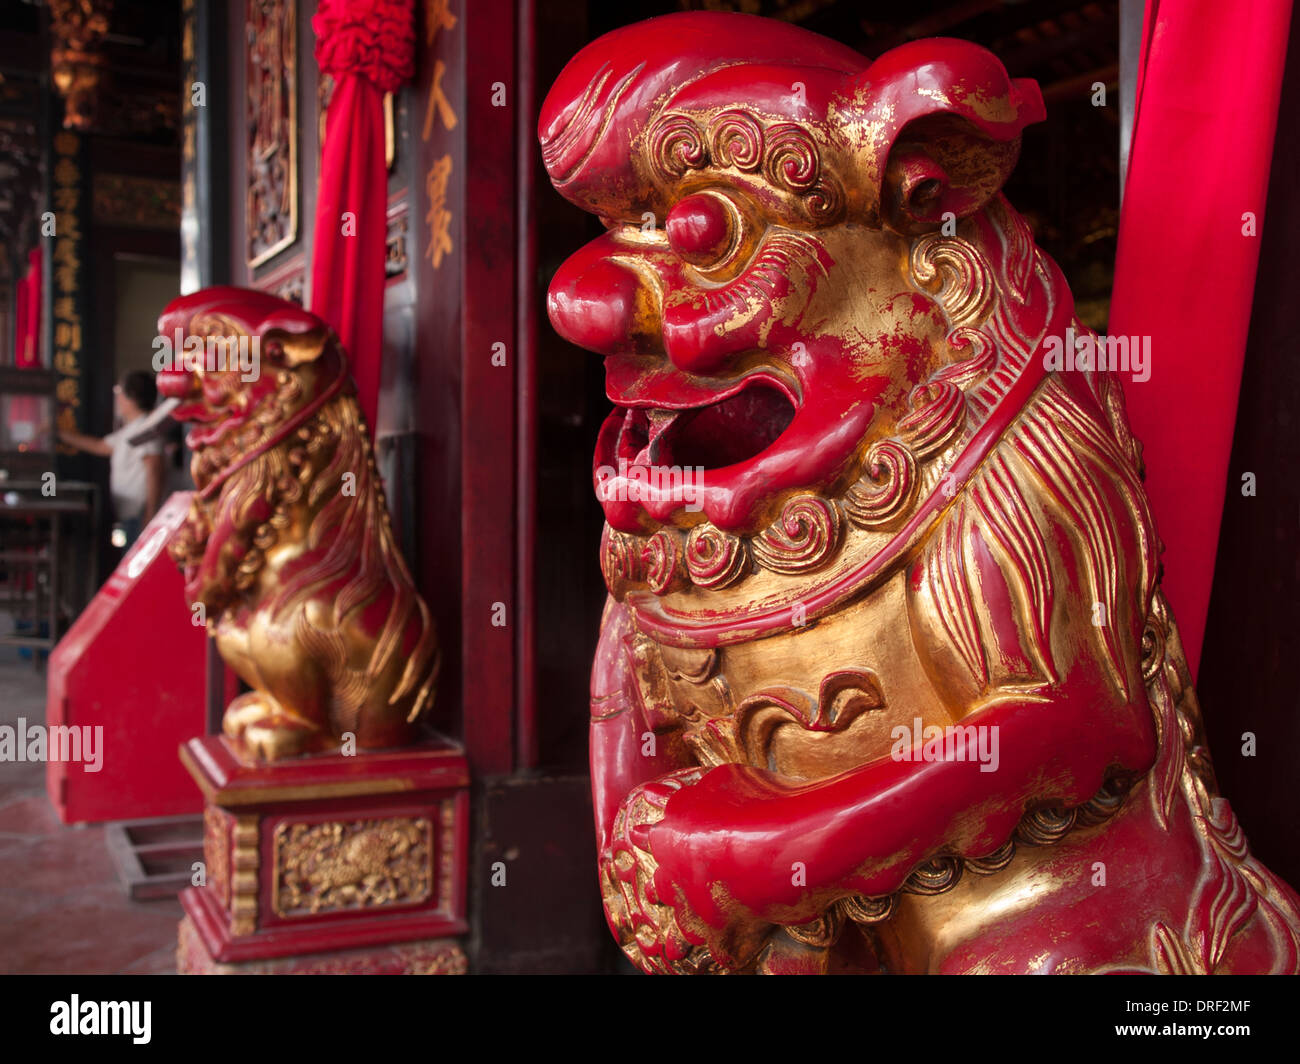 Two grotesque red and gold figures stand guard beside the door of a Chinese temple in Malaysia. - Stock Image